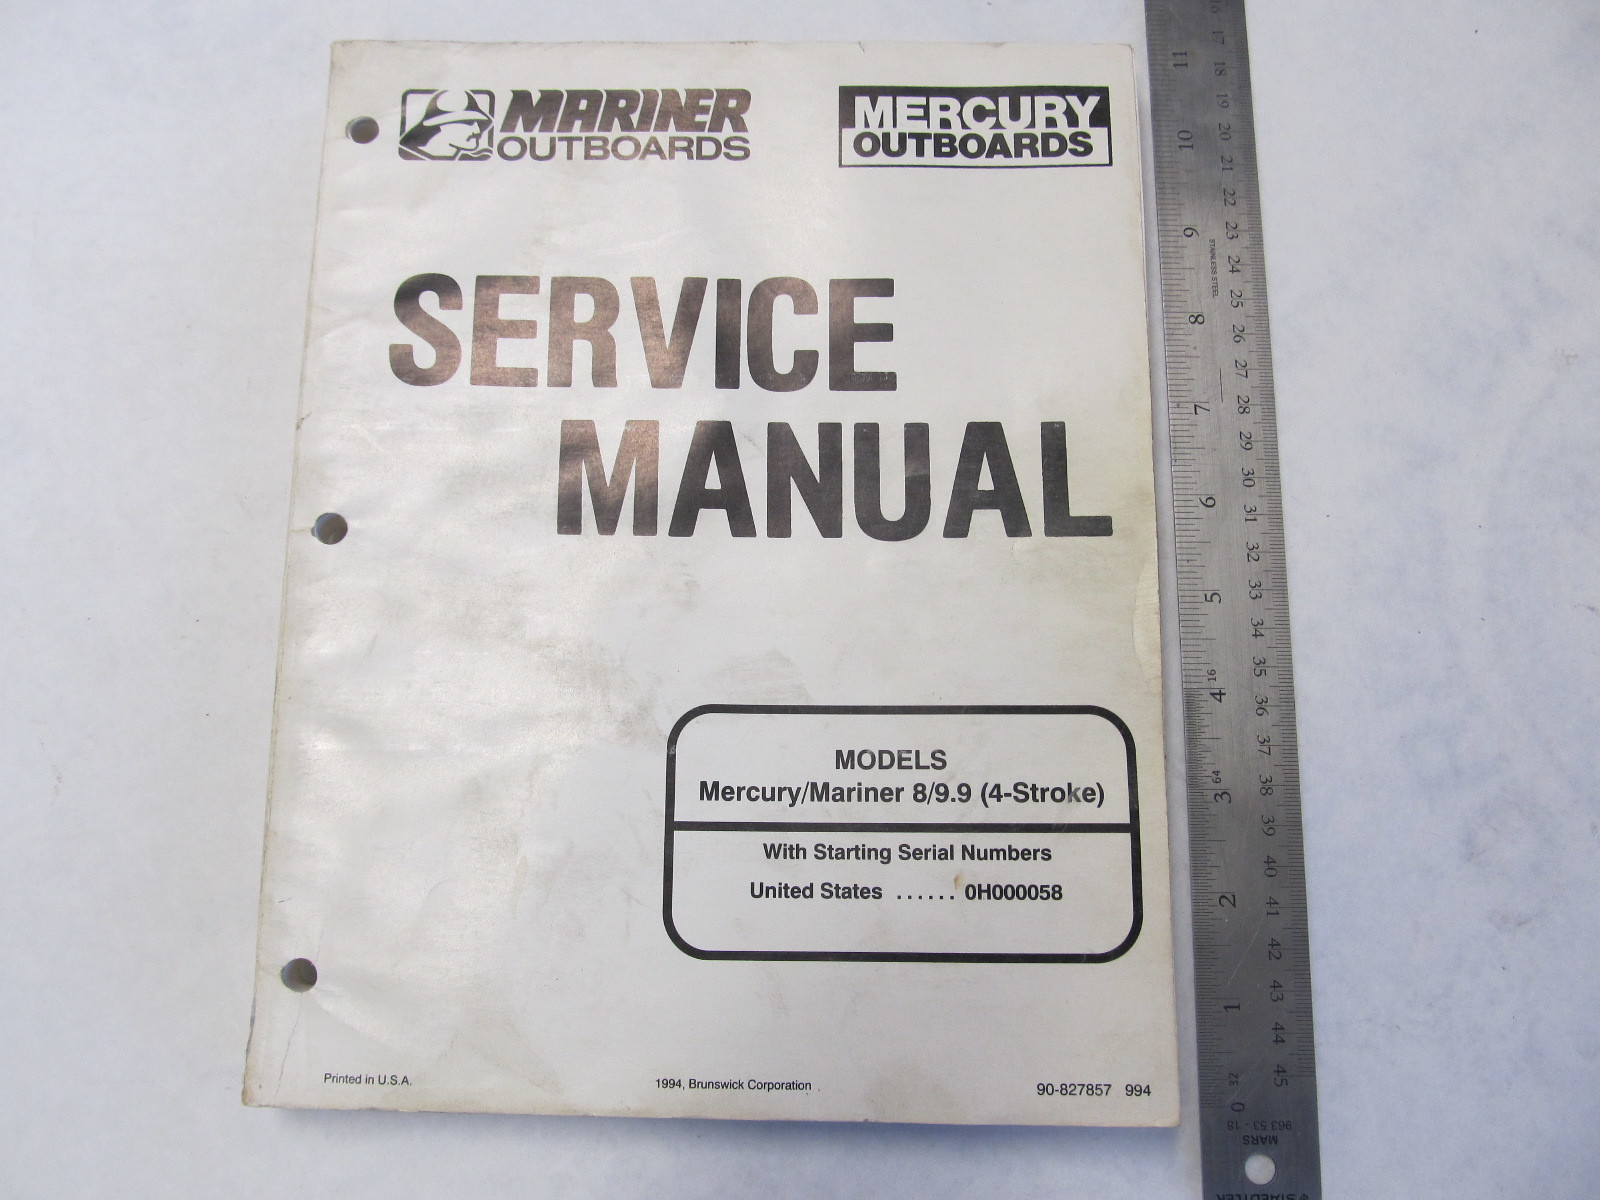 1994 Mercury Mariner Outboard Service Manual 8-9.9 HP 4-Stroke